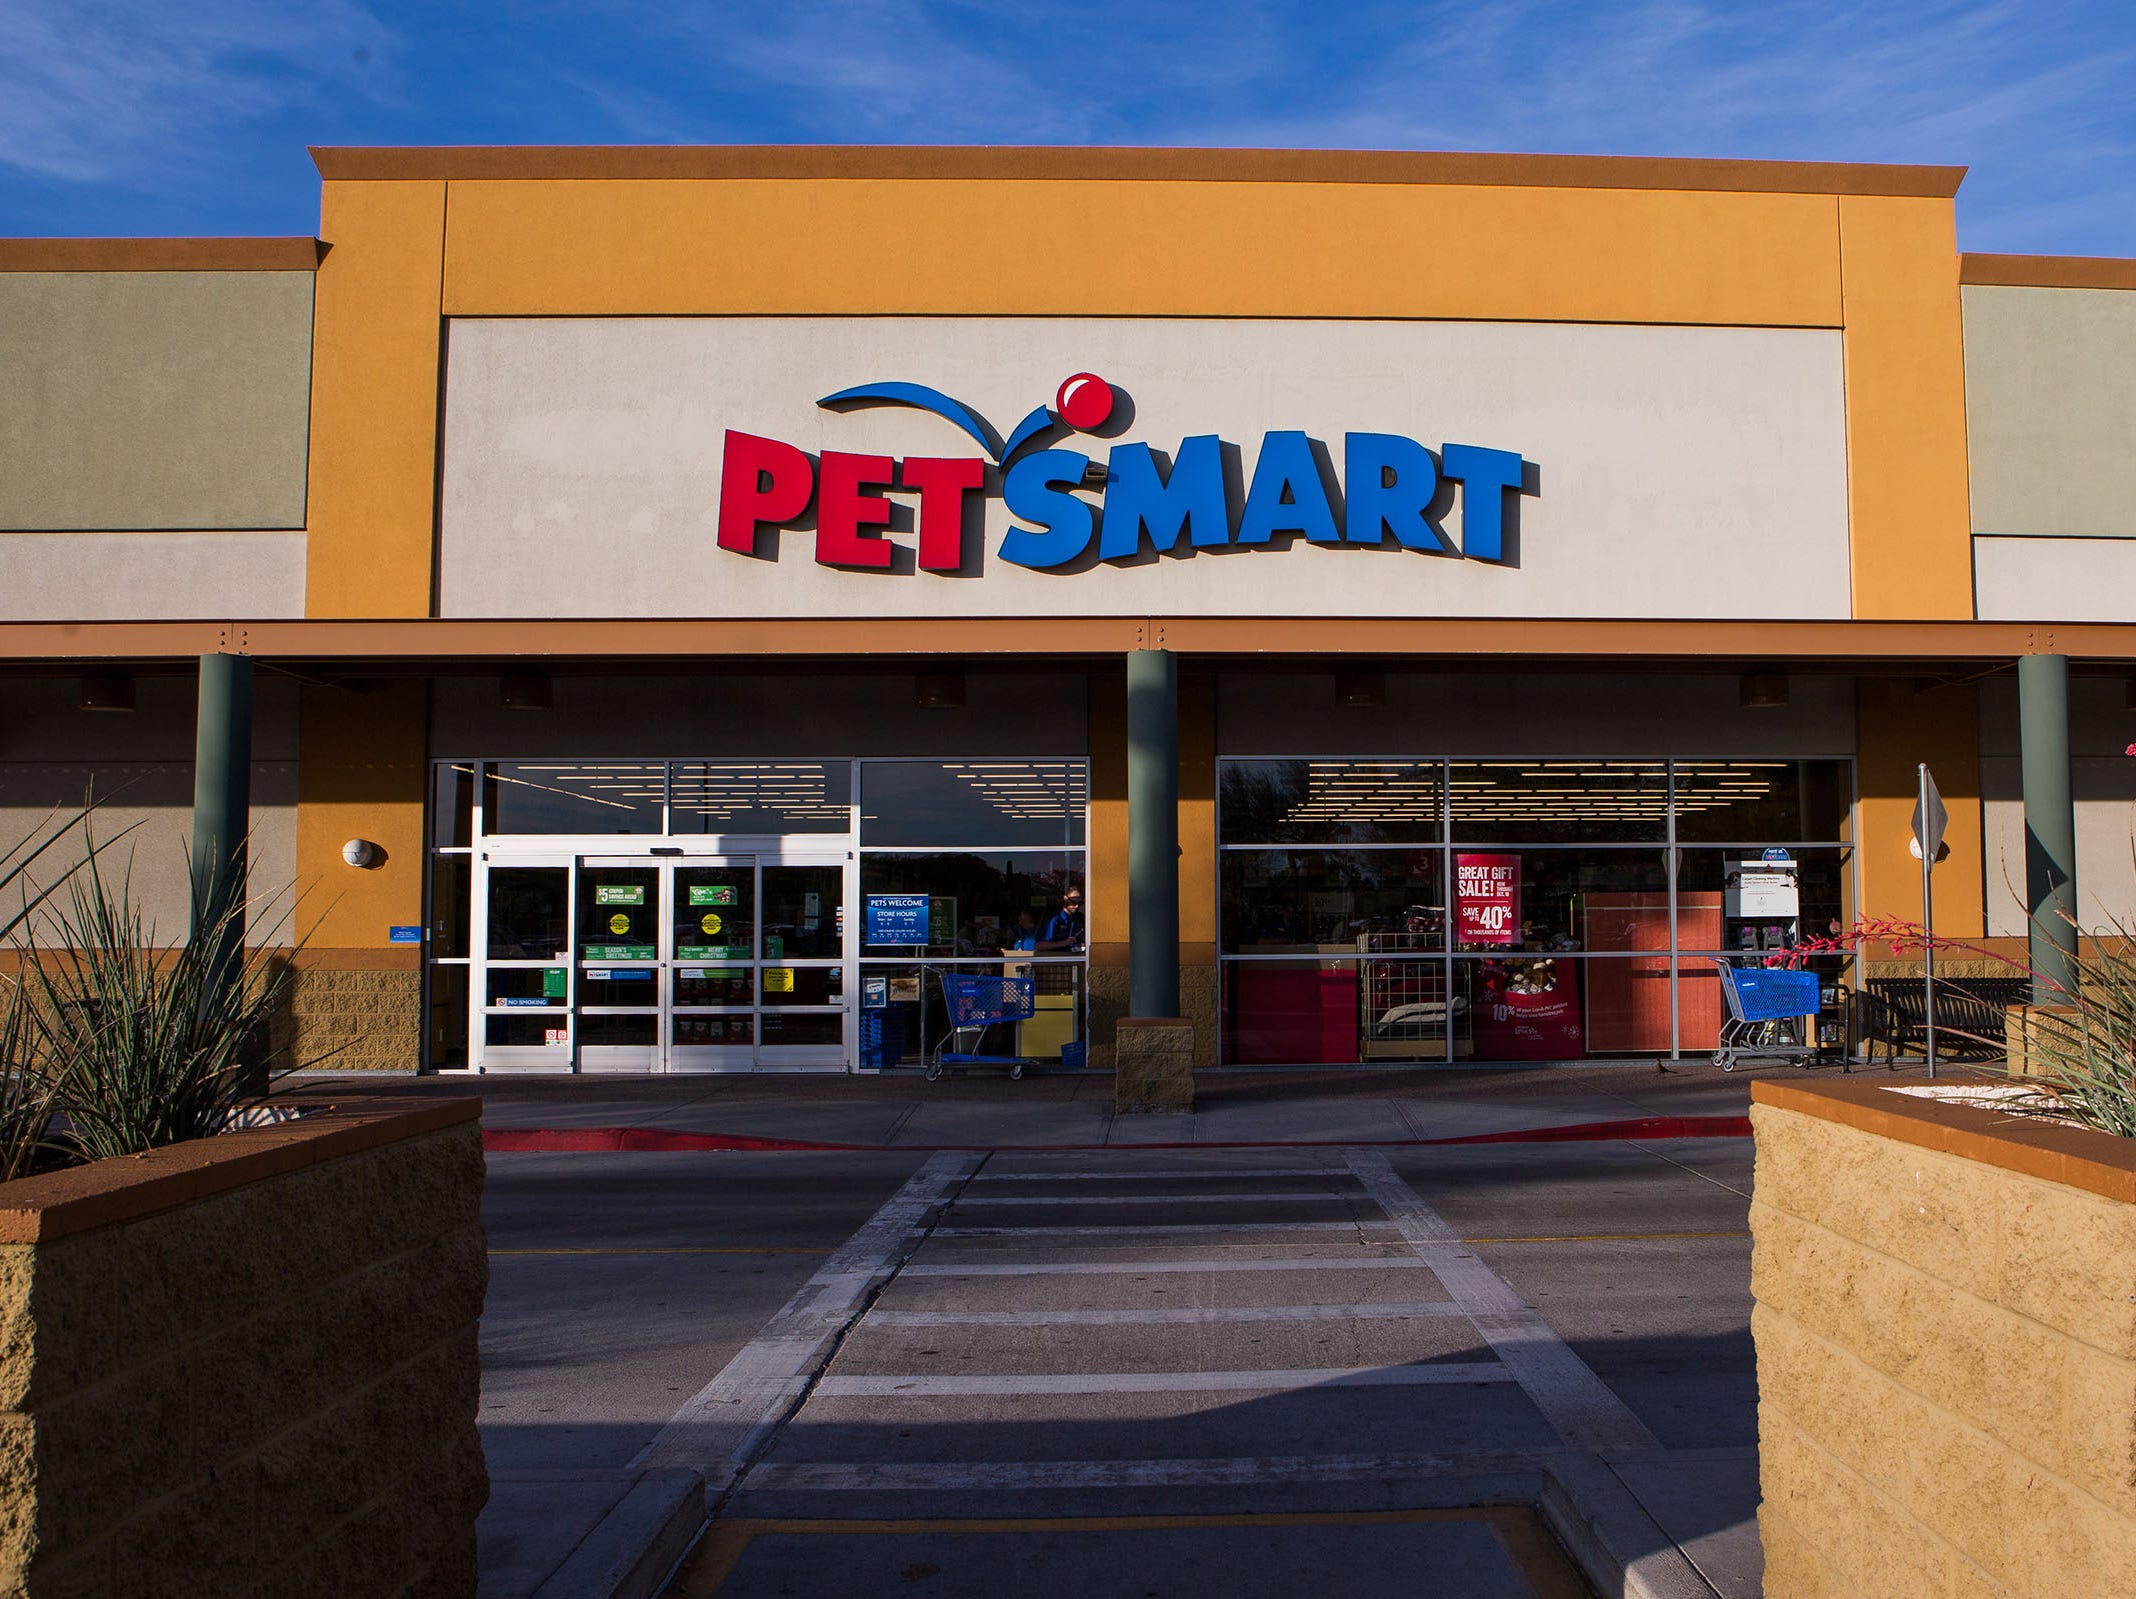 PetSmart, hiring 380. The company provides pet supplies and services. More info: careers.petsmart.com.